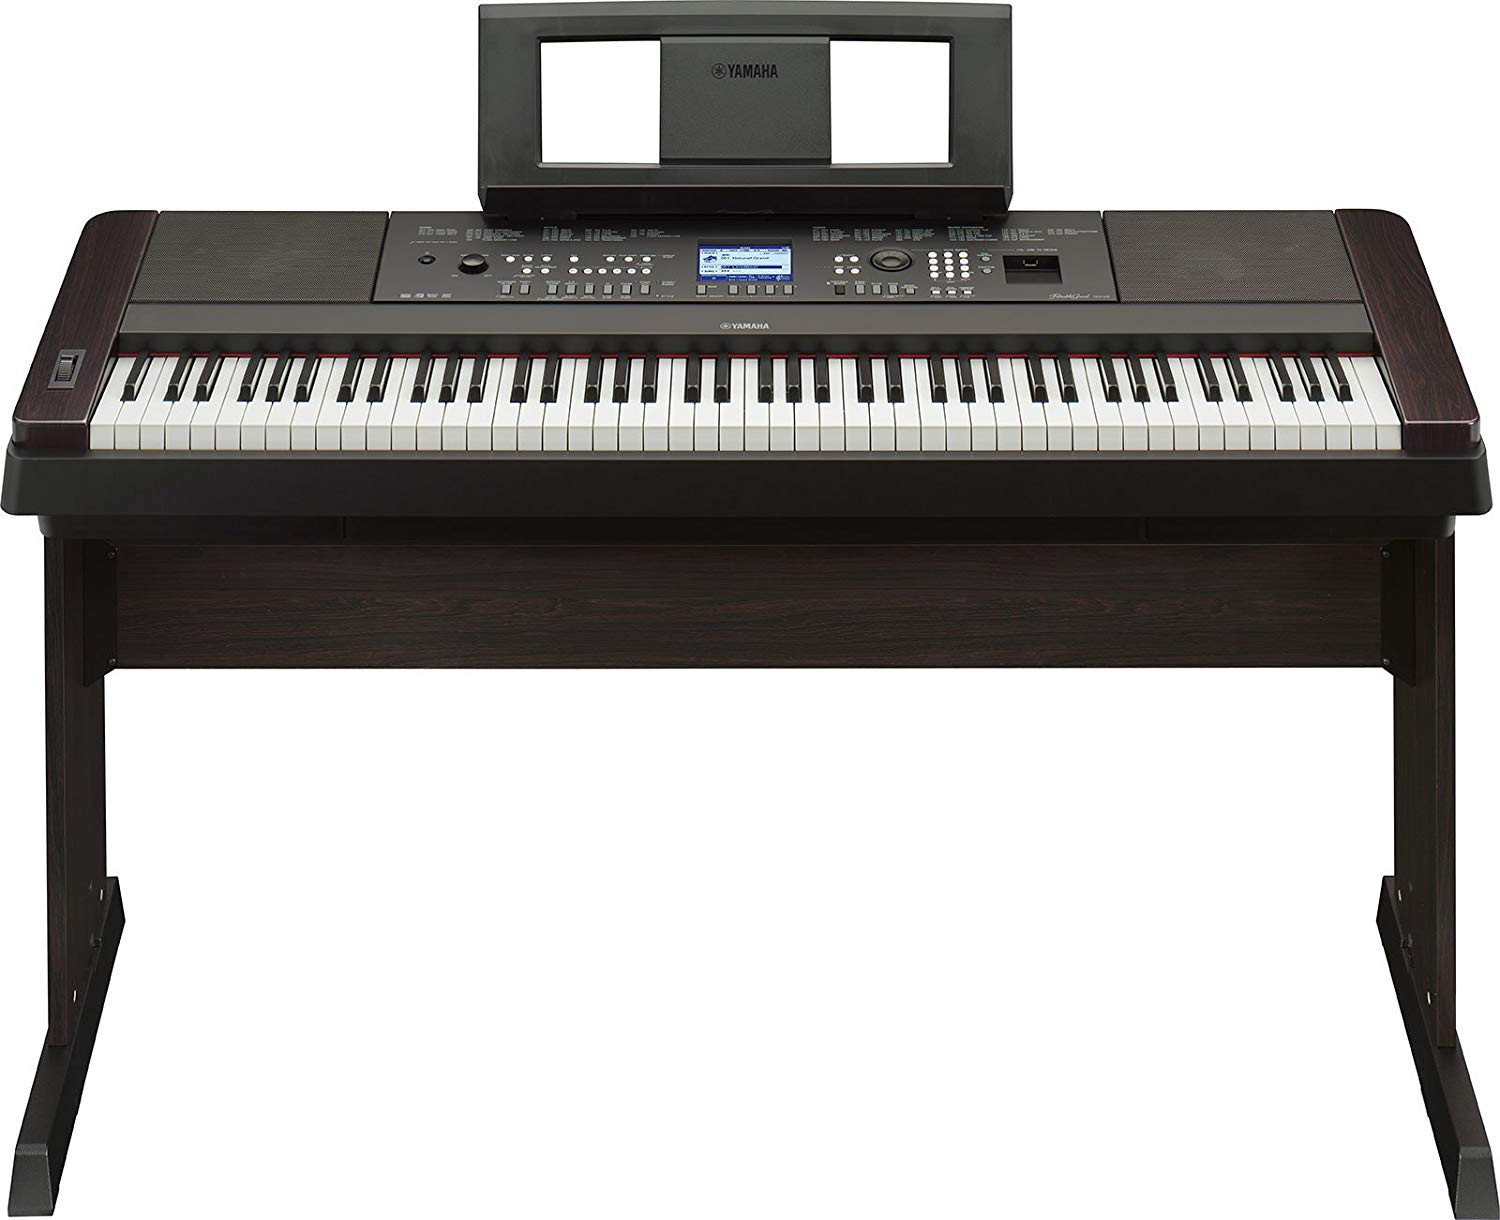 Yamaha DGX-650 Digital Piano Review 2020